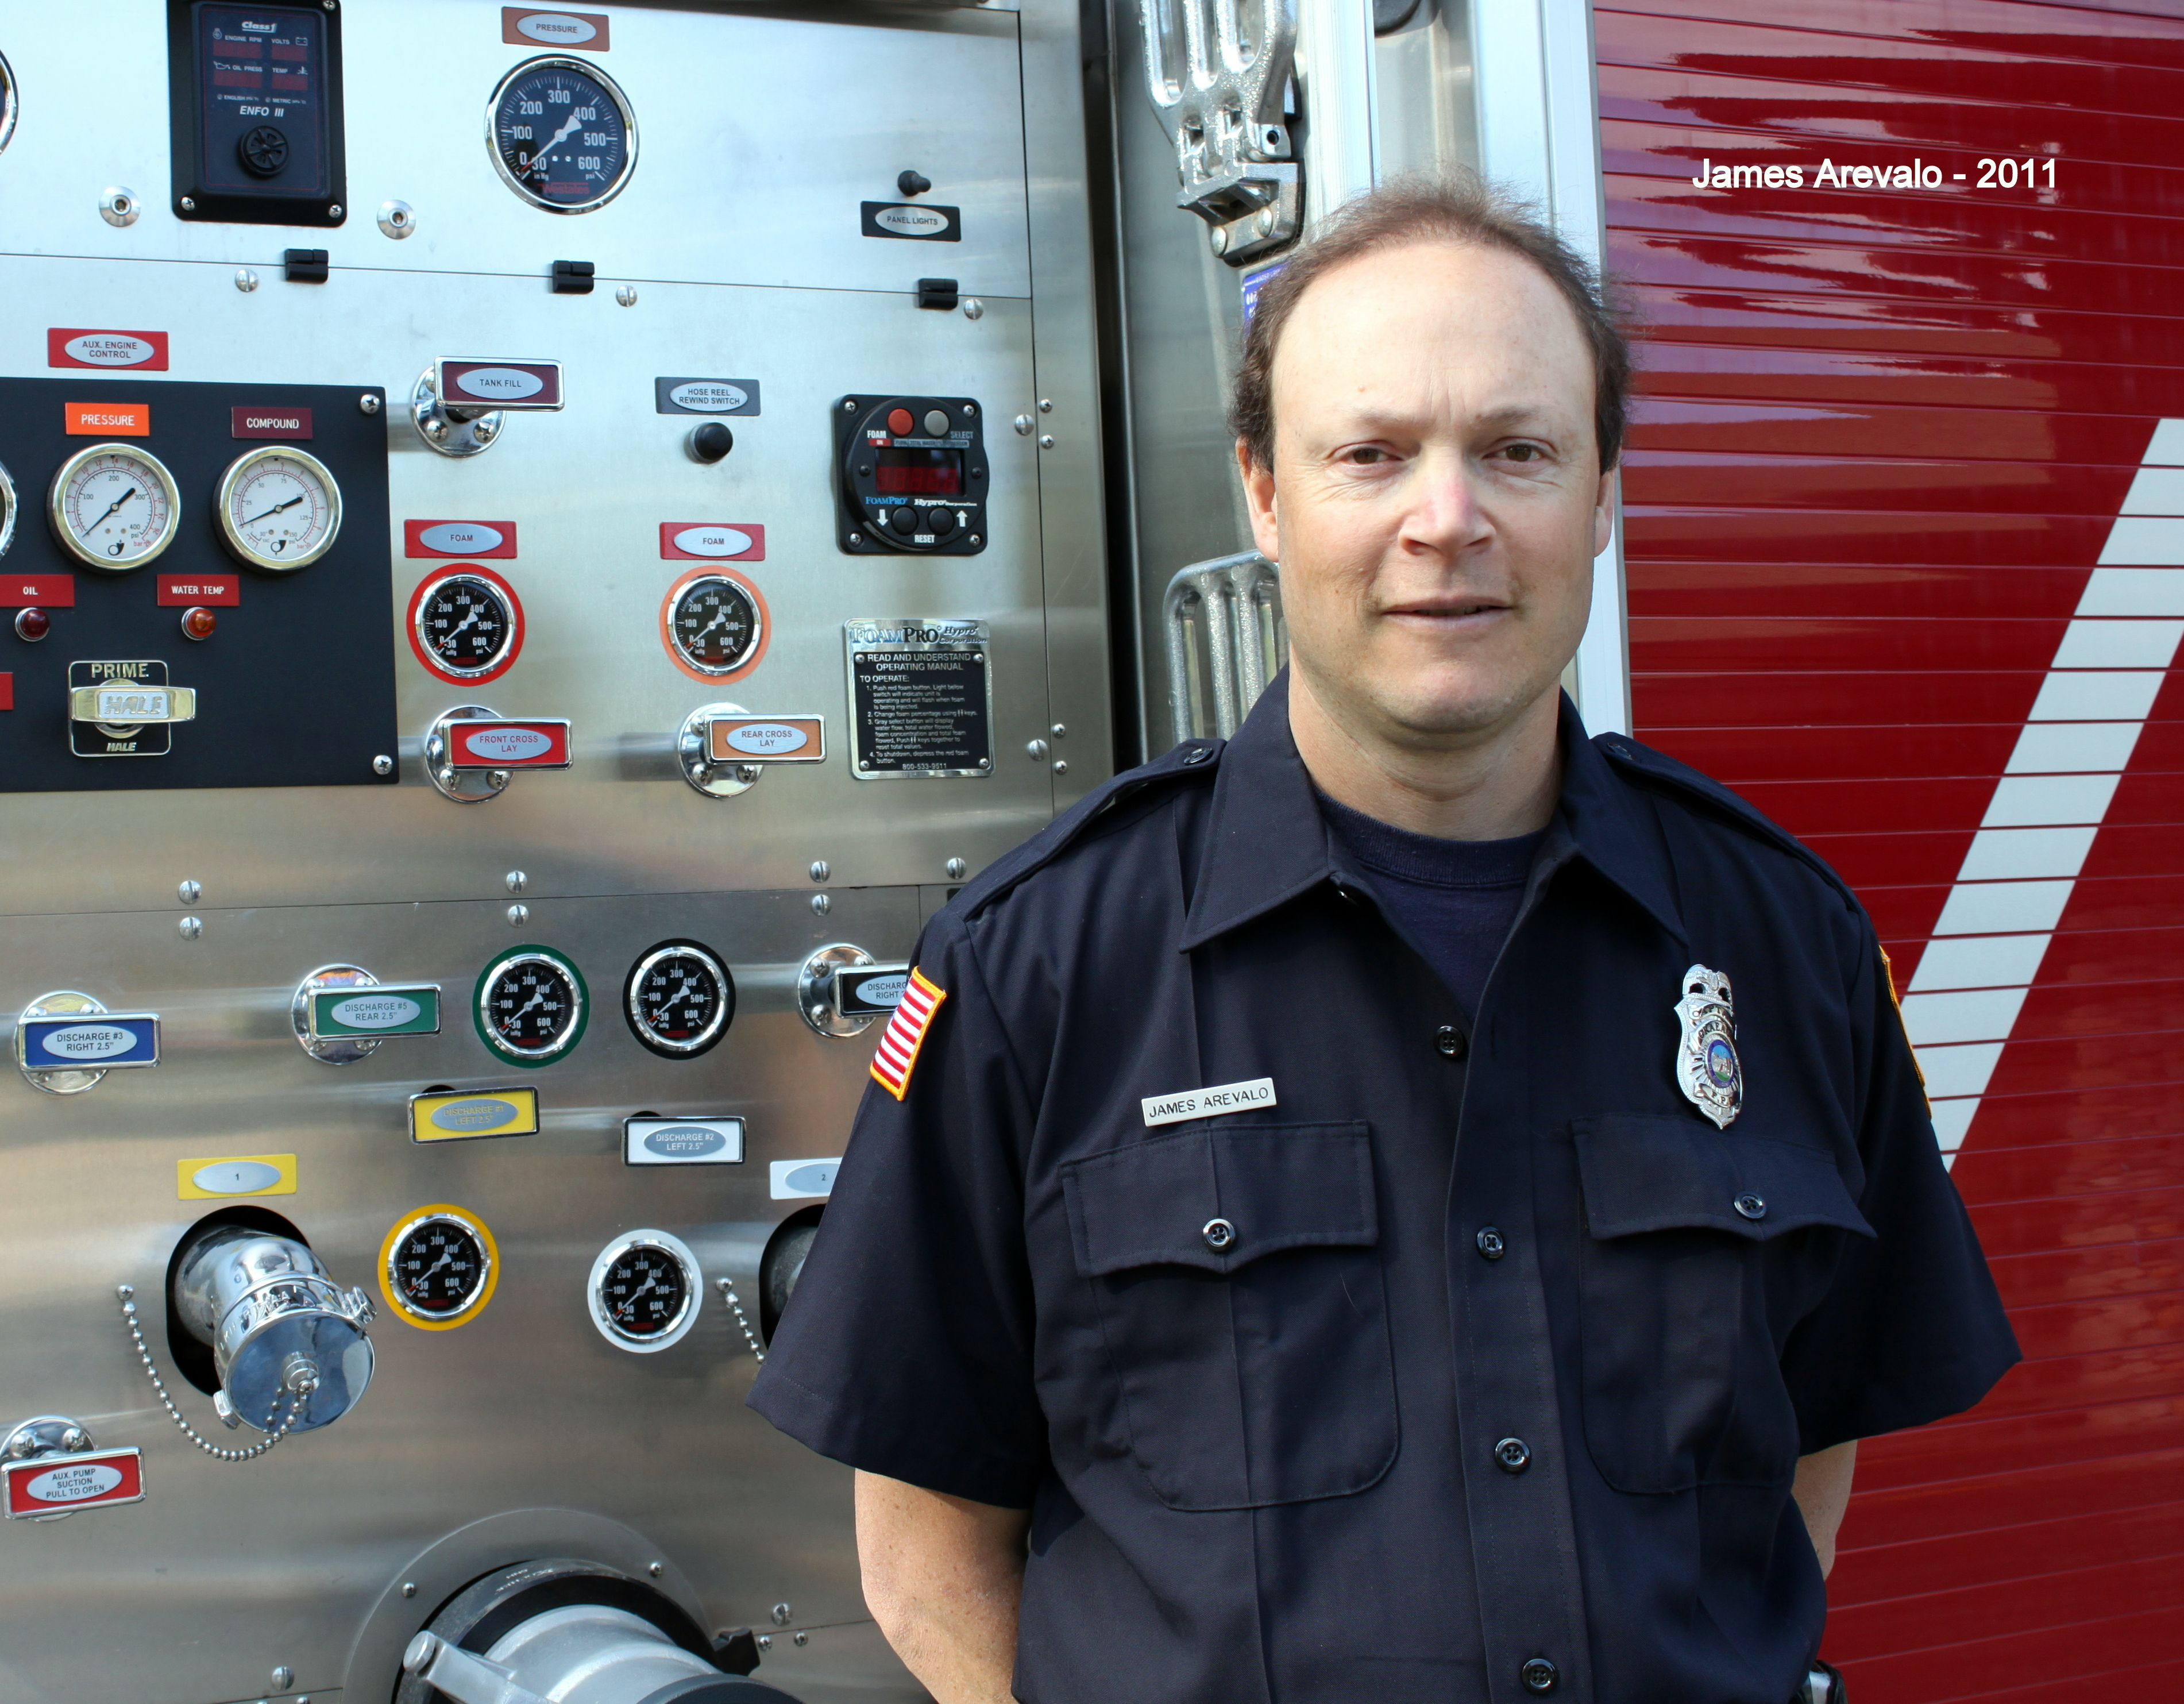 2011 Firefighter of the year